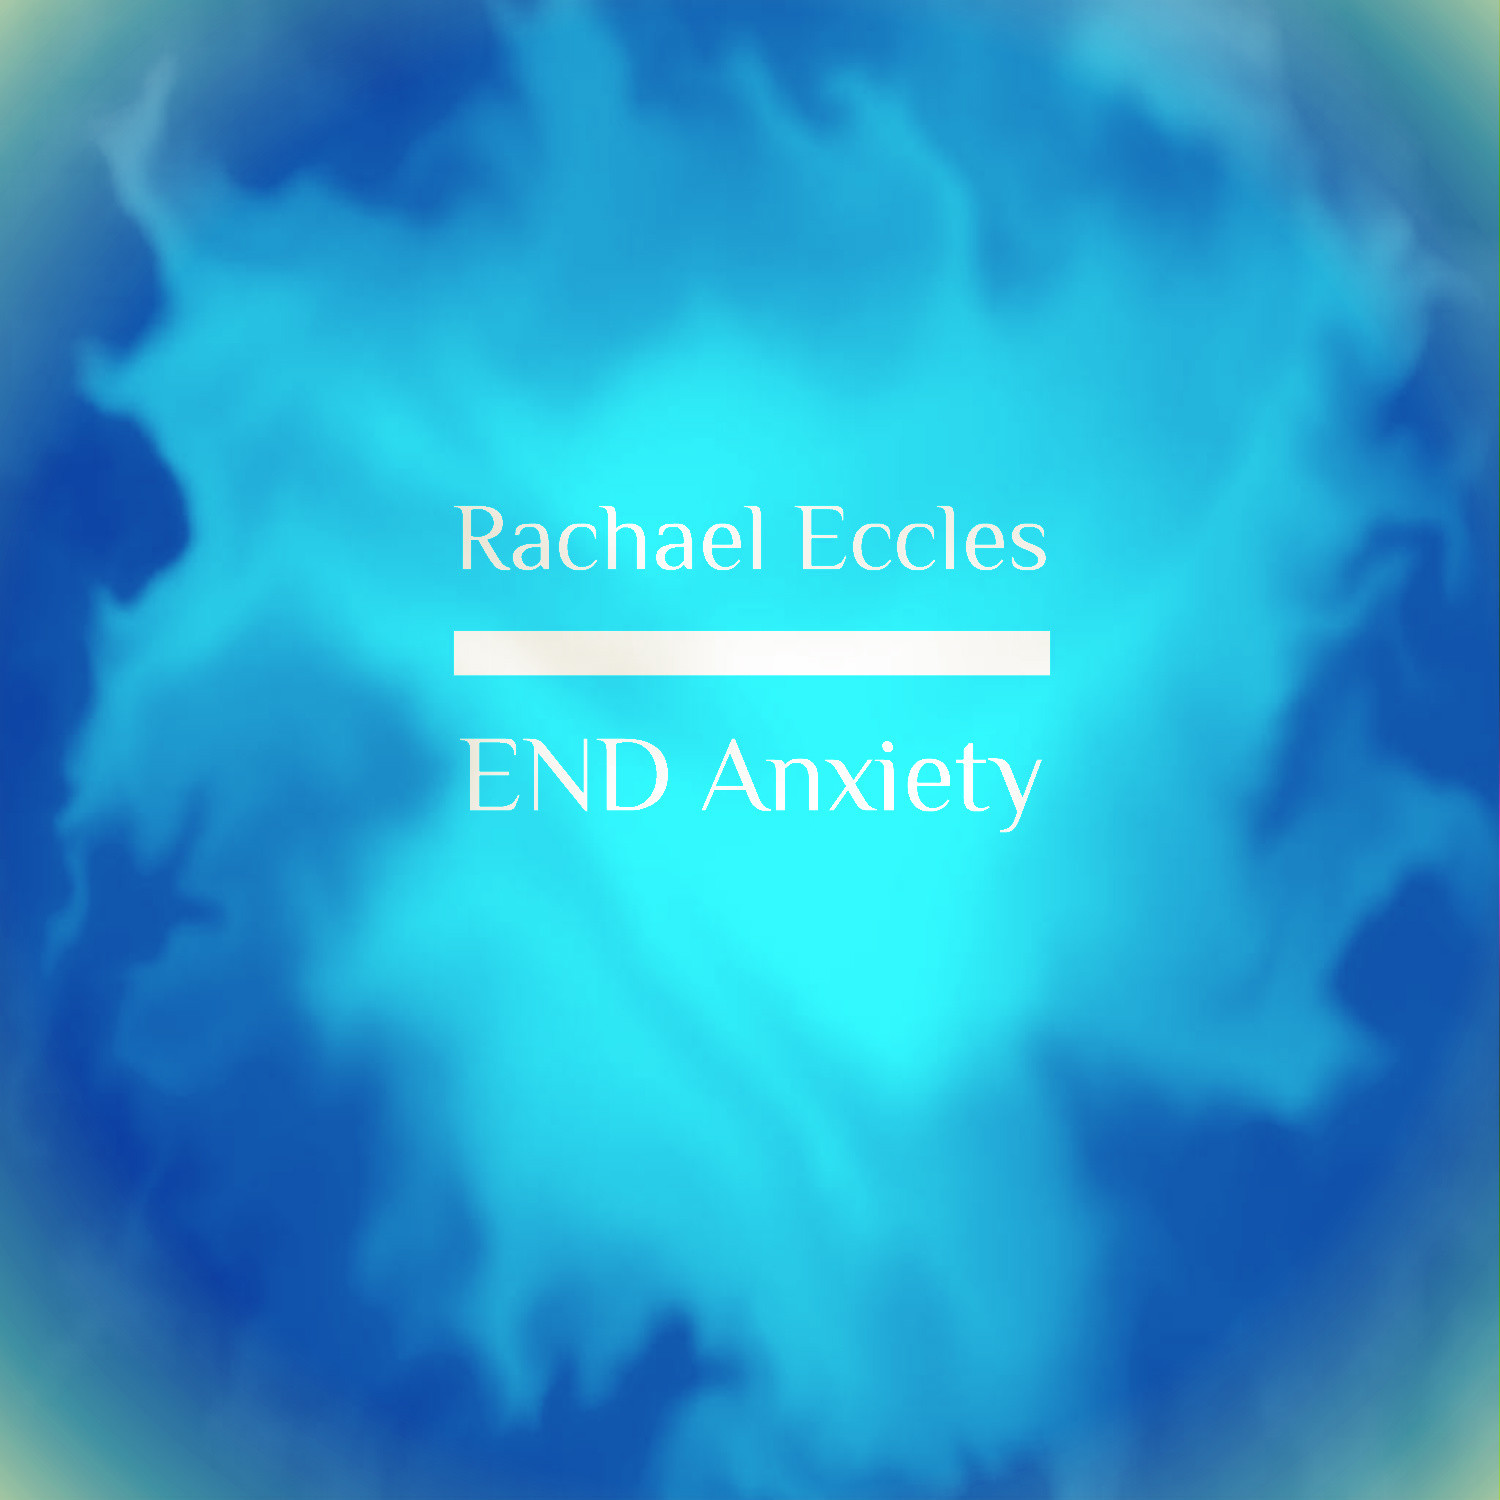 End Anxiety, Sleep Hypnosis for Anxiety Night time track Hypnotherapy Hypnosis Download